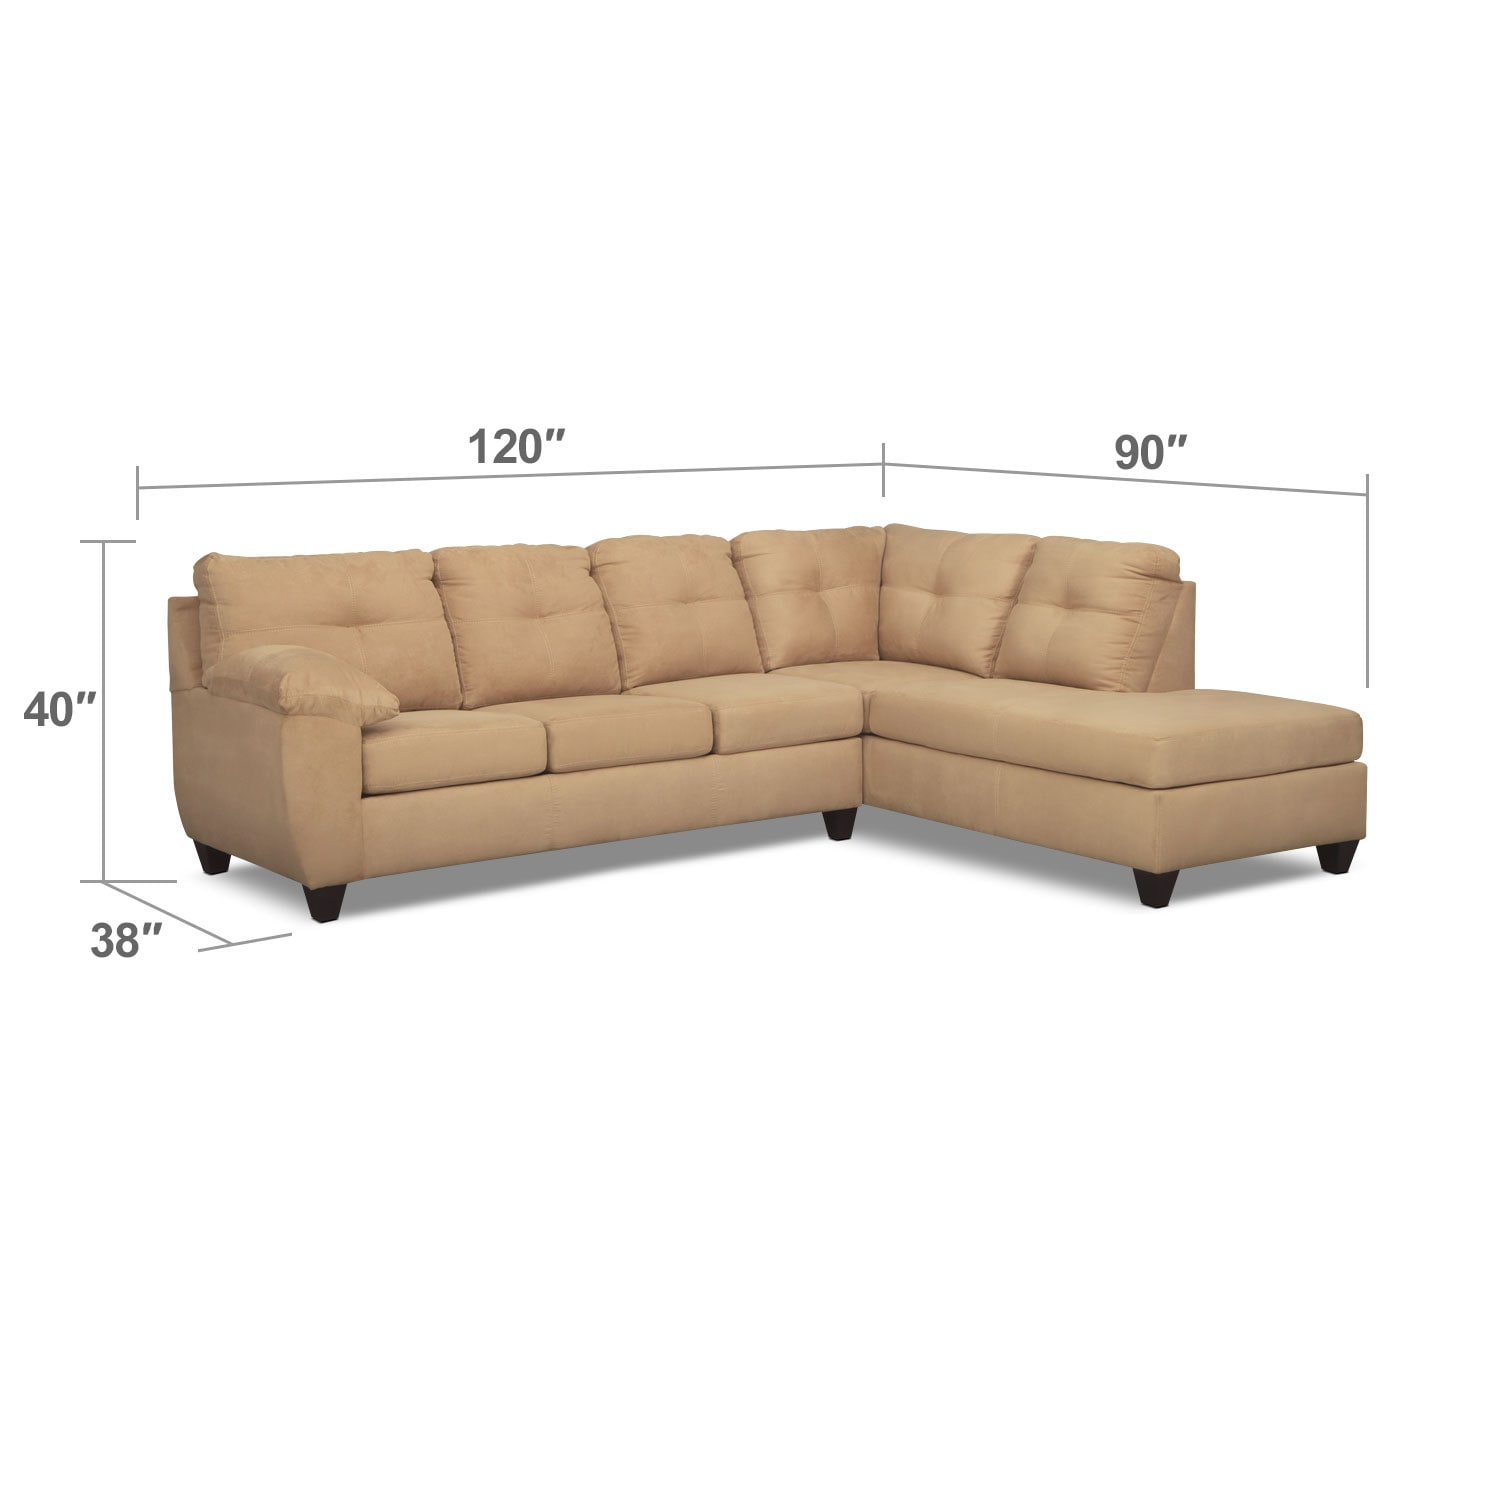 Living Room Furniture - Rialto 2-Piece Memory Foam Sleeper Sectional with Right-Facing Chaise - Camel